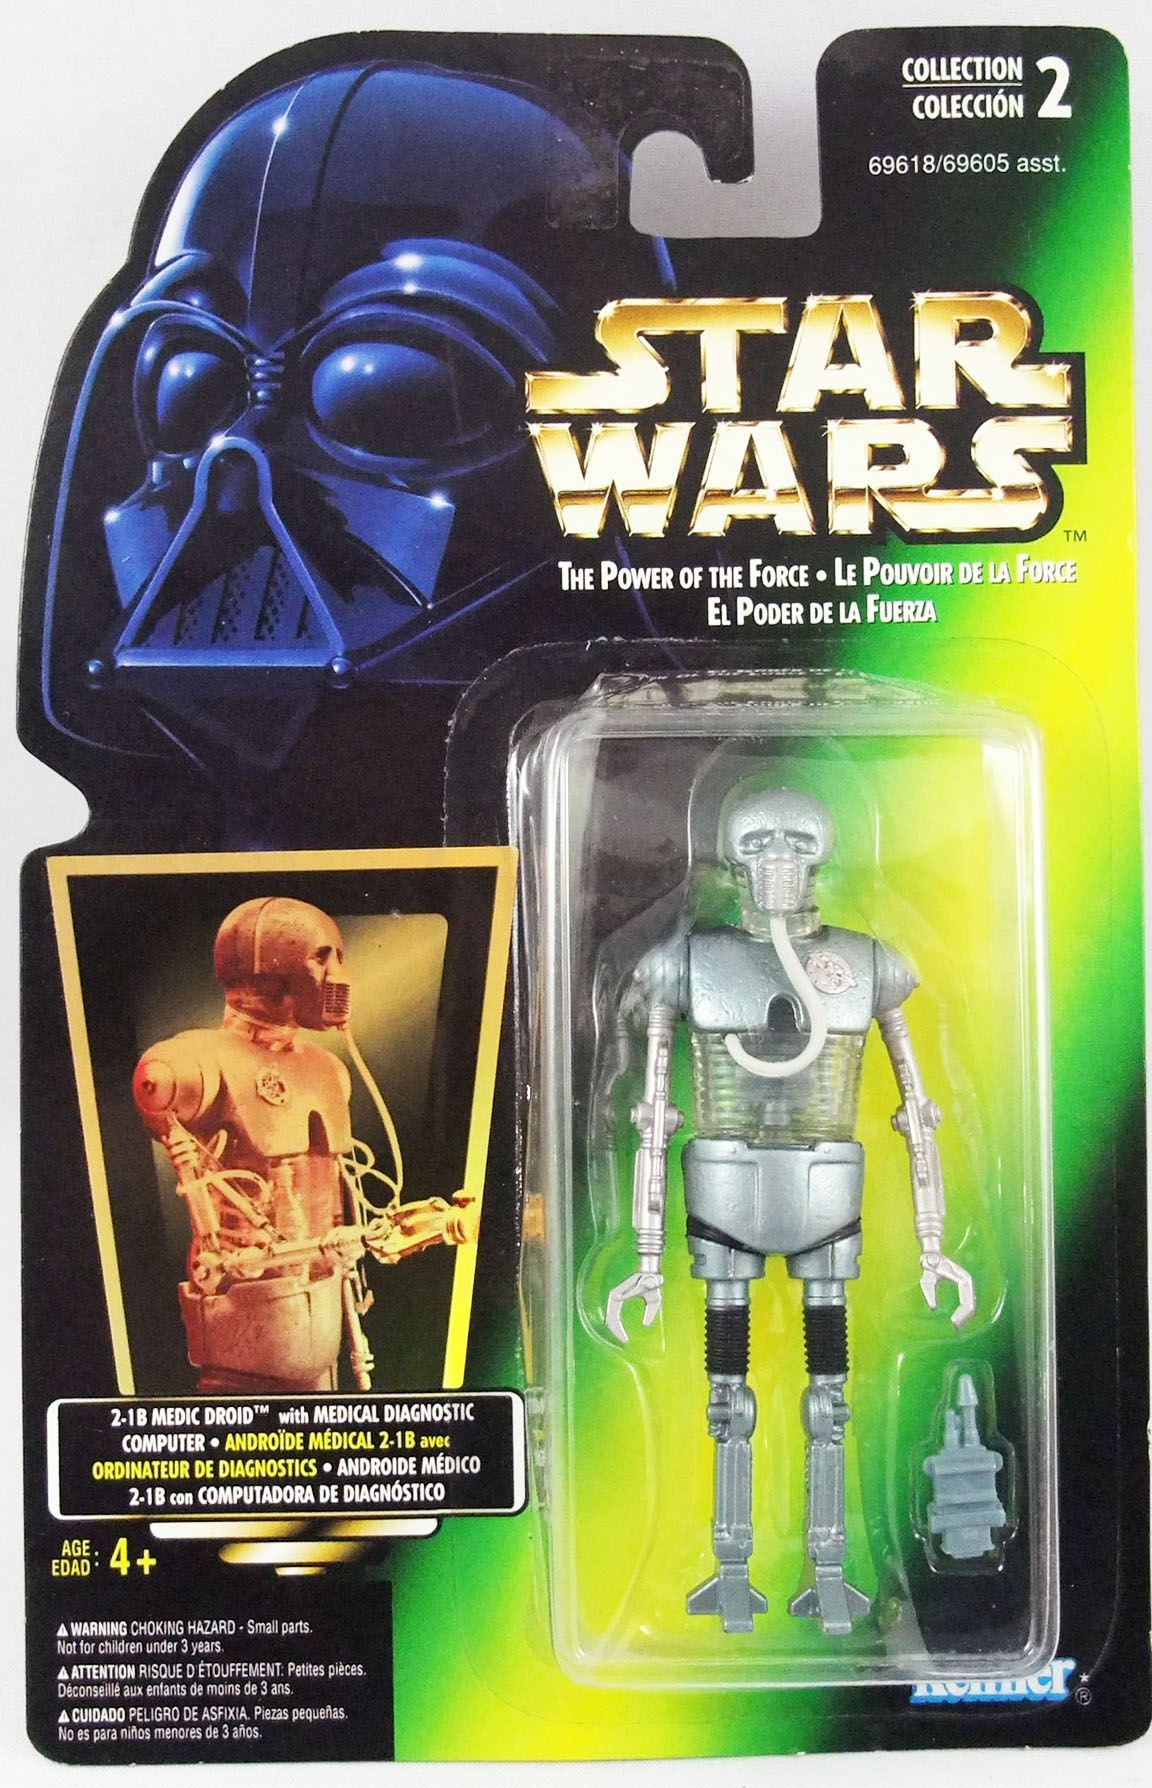 Star Wars (The Power of the Force) - Kenner - 2-1B Medical Droid